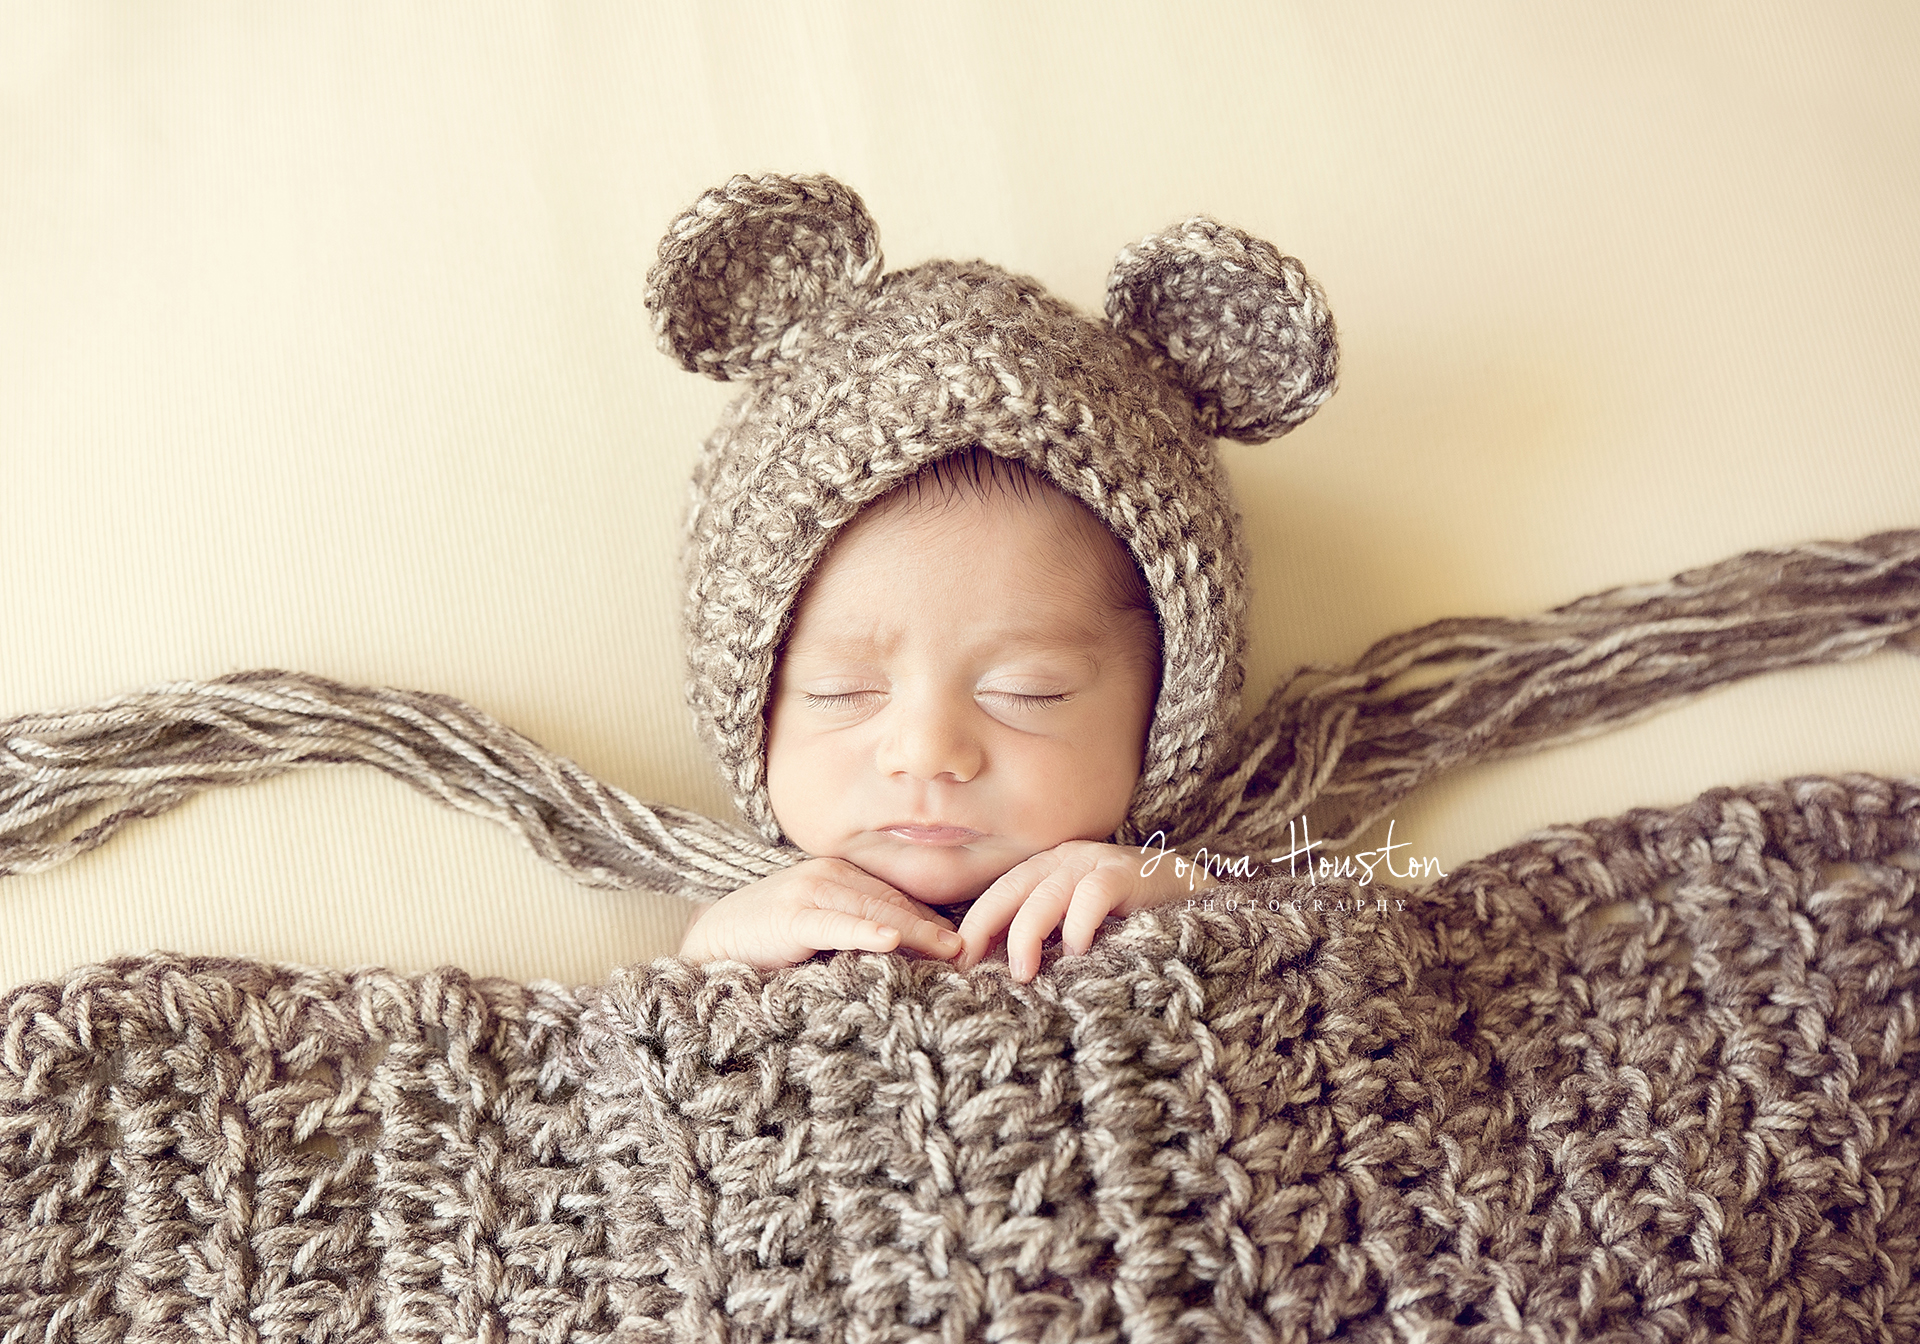 Baby photographer Chicago | Toma Houston Photography